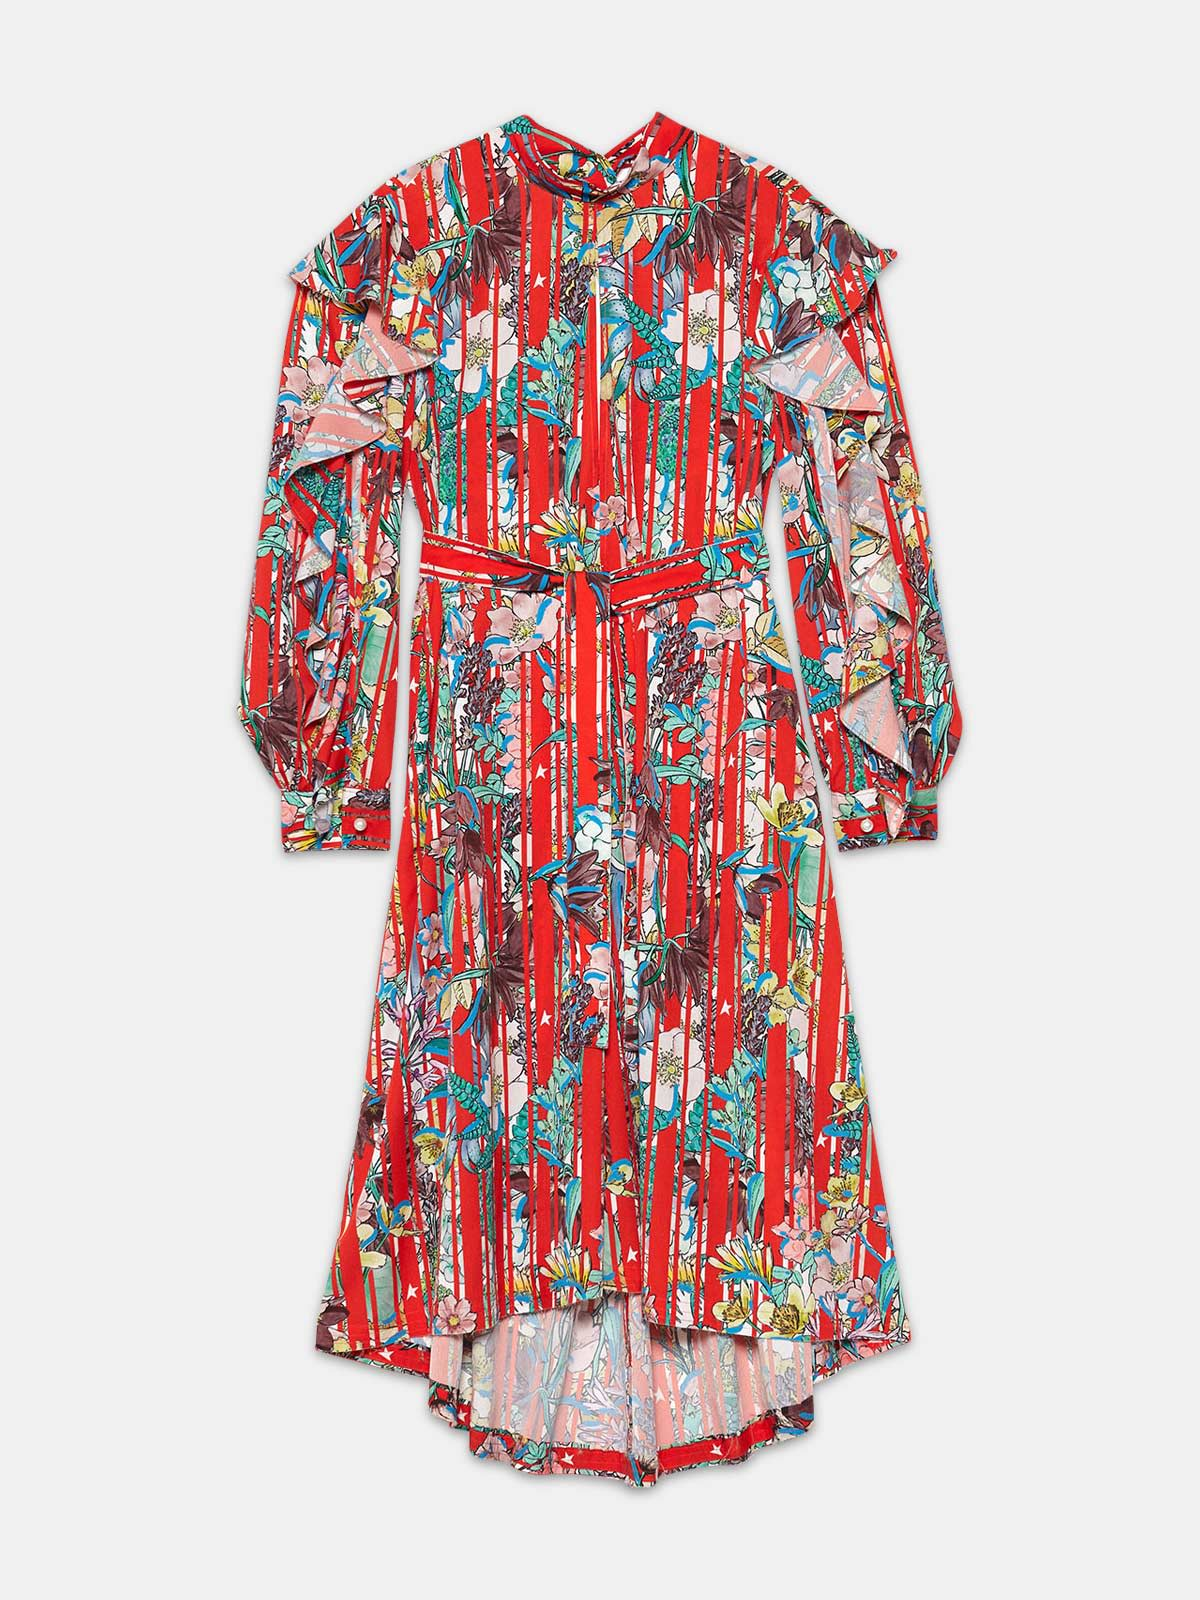 Golden Goose - Chieko dress in floral fabric with ruffles in